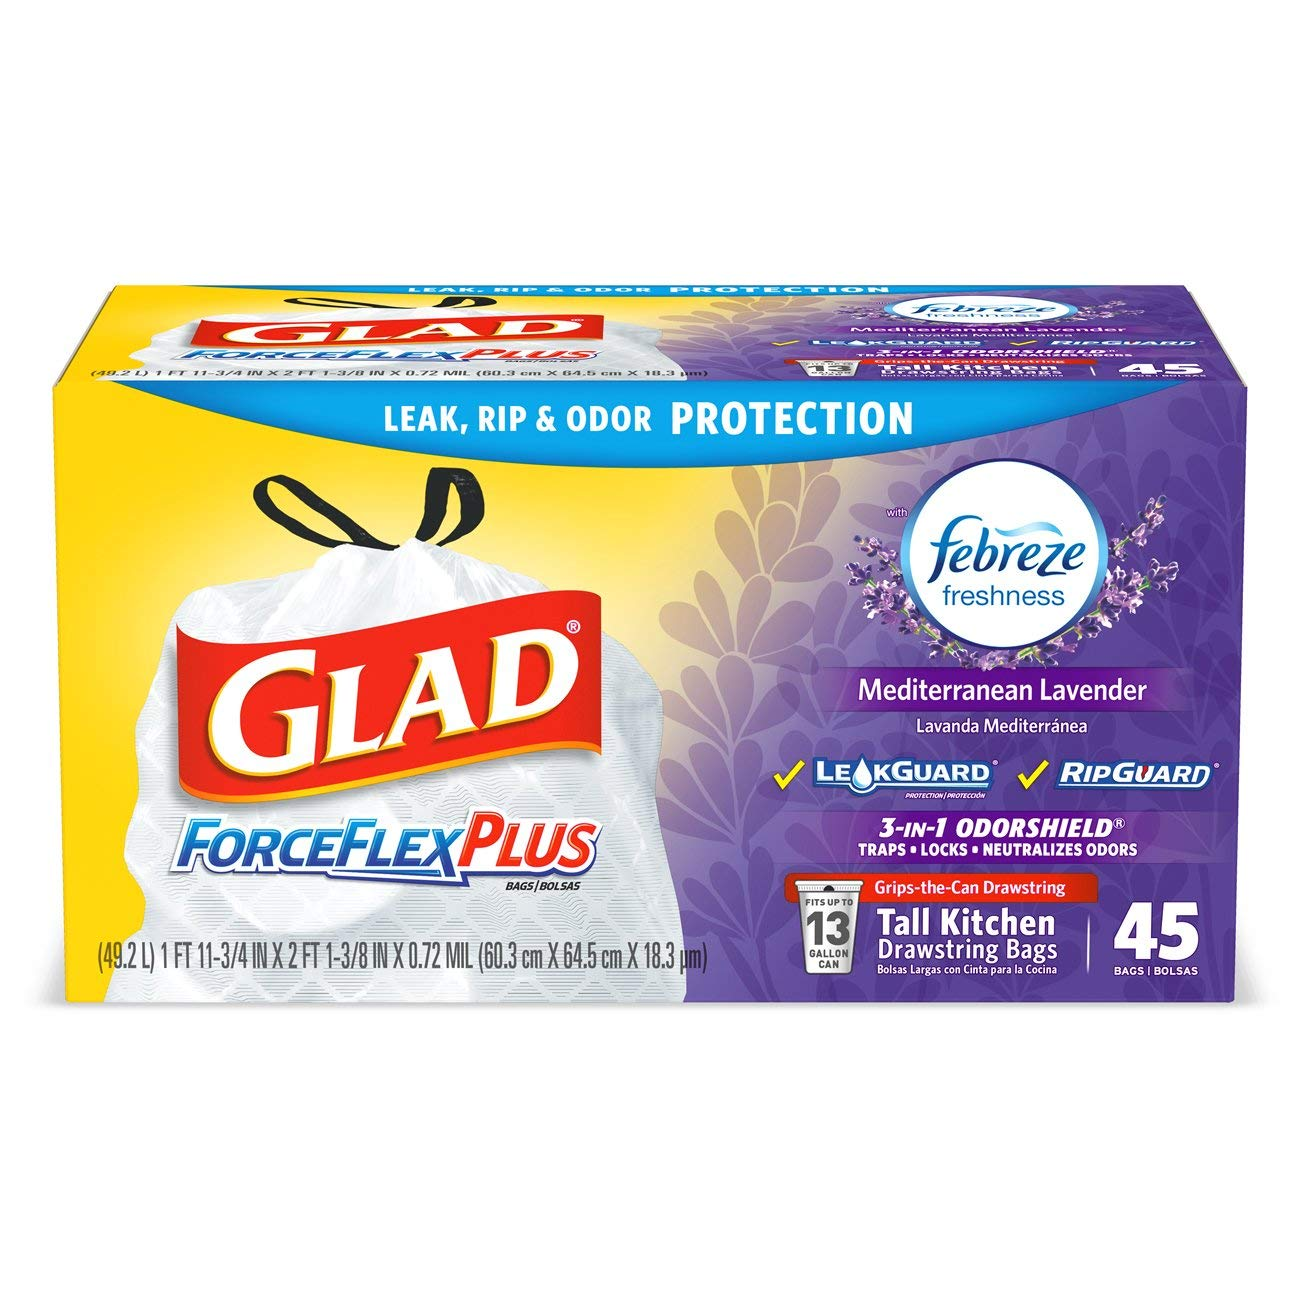 Glad Tall Kitchen Drawstring Trash Bags - ForceFlexPlus 13 Gallon White Trash Bag, Mediterranean Lavender - 45 Count by Glad